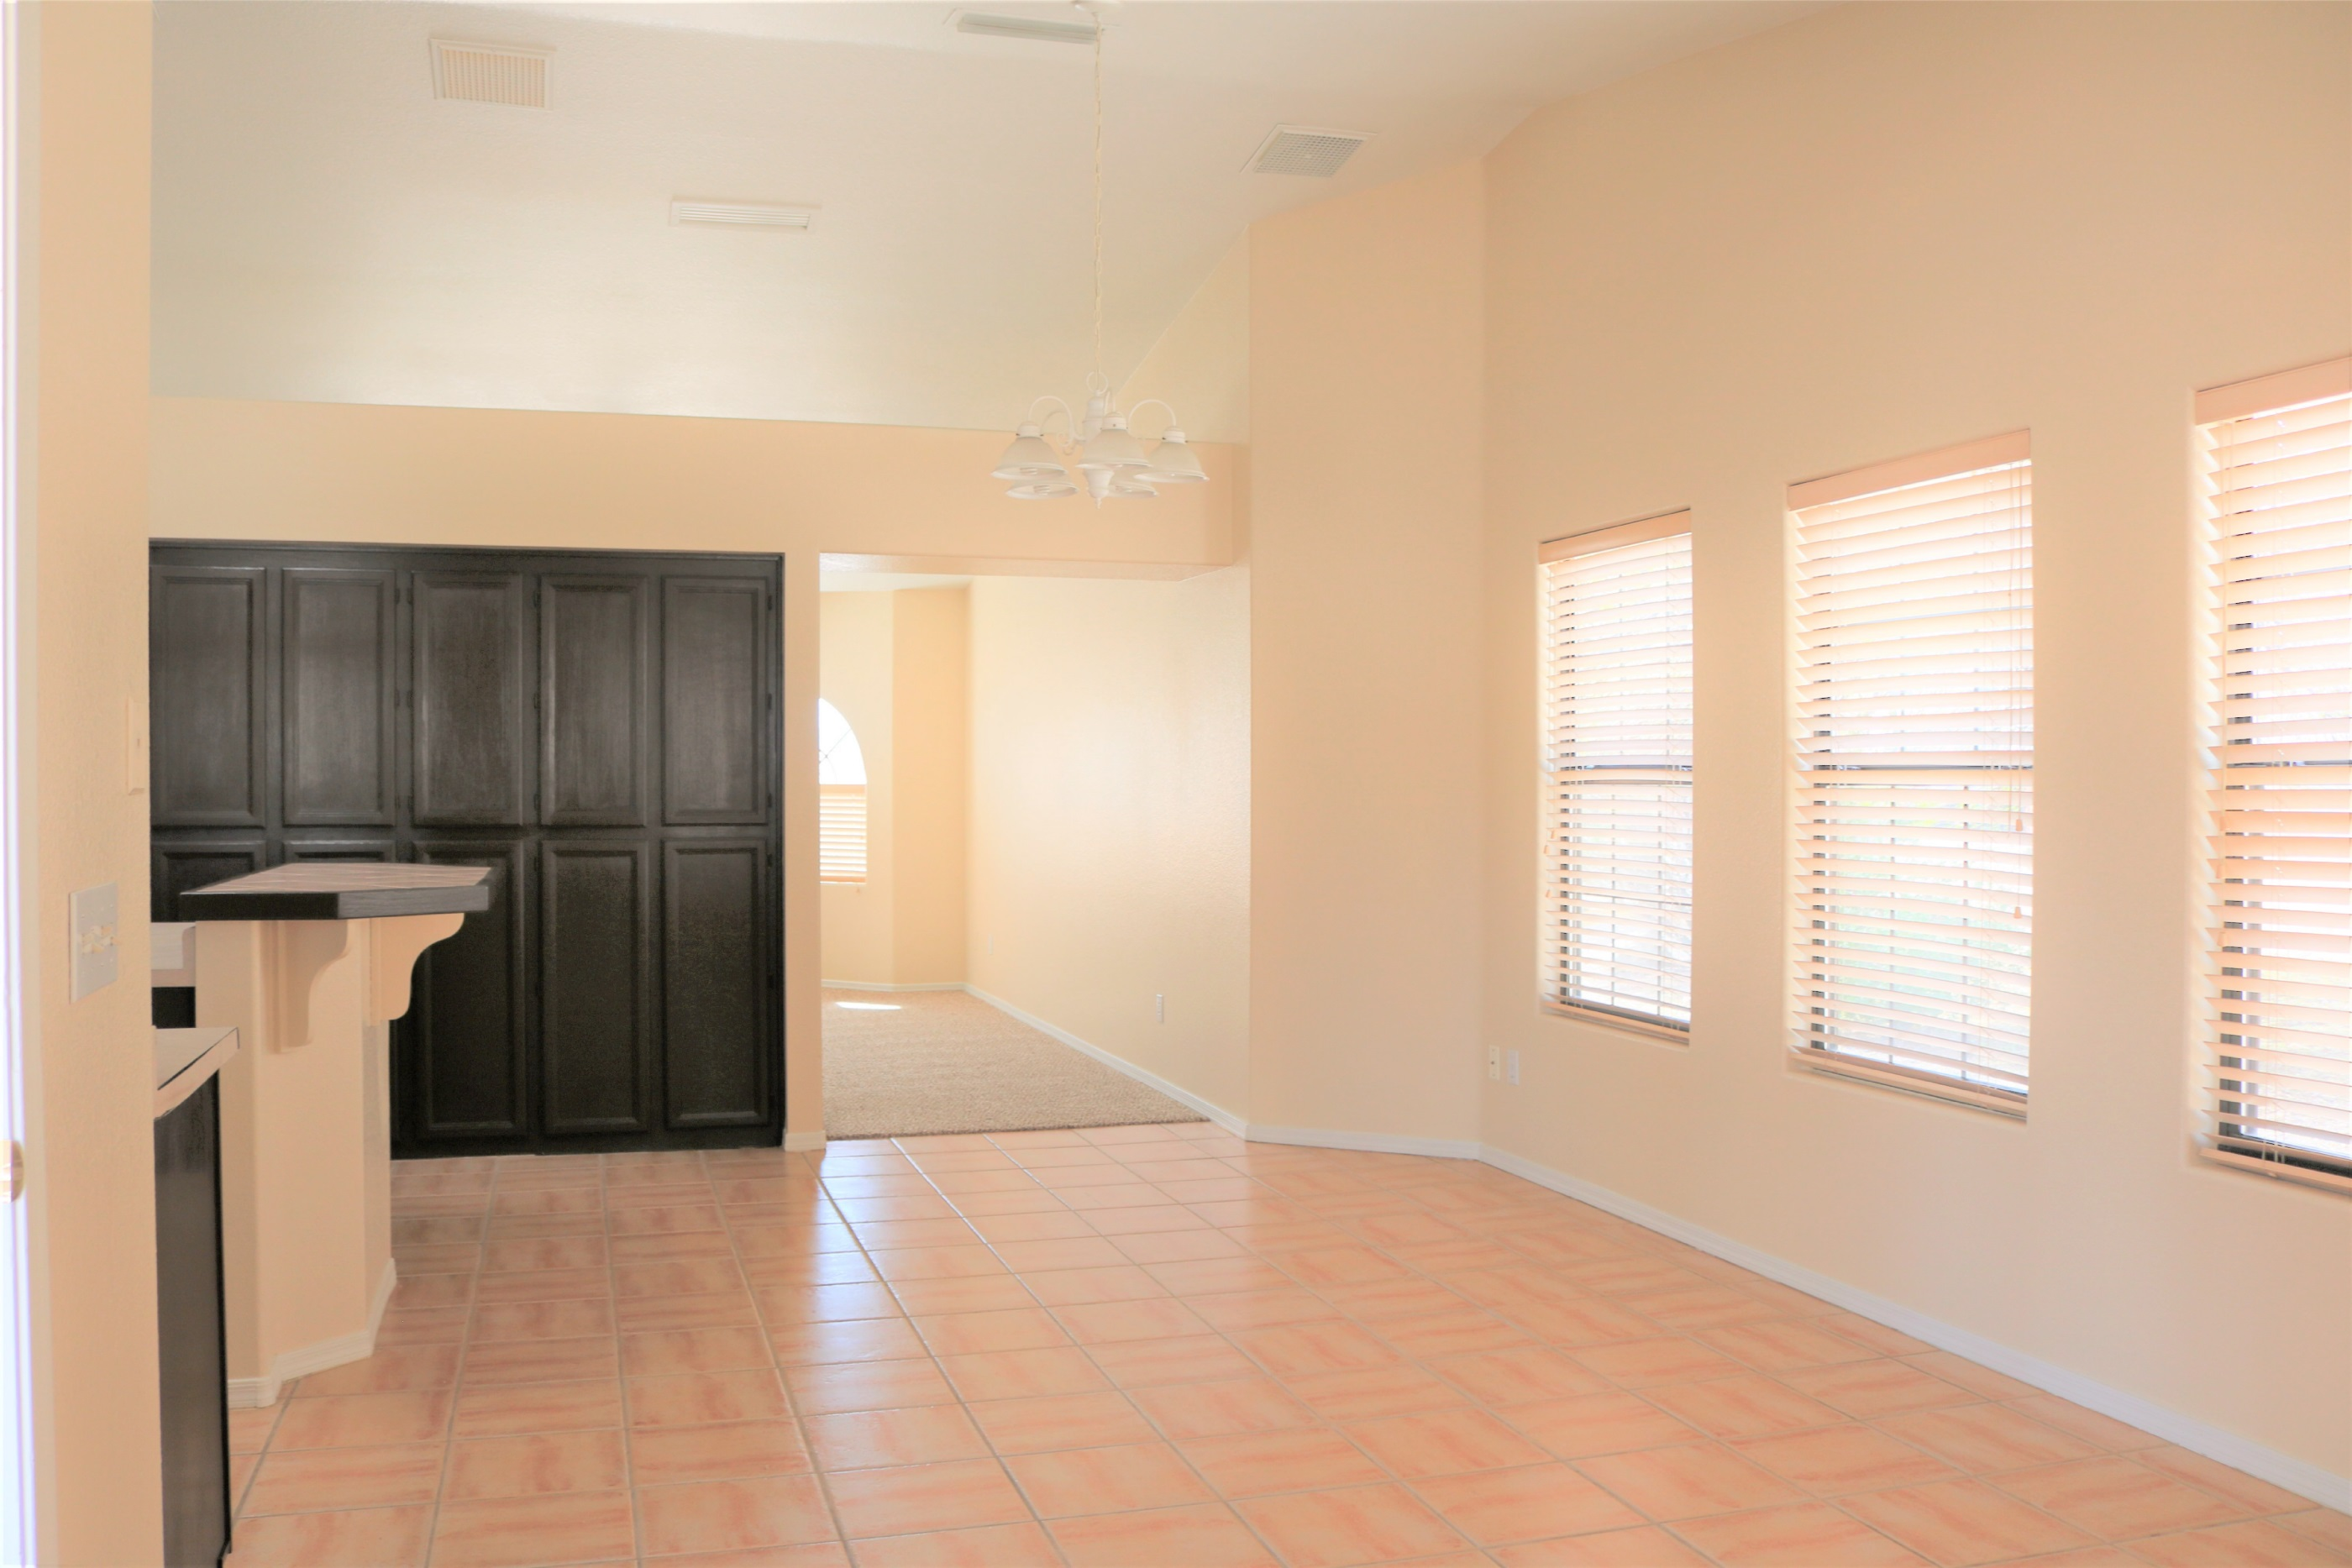 vaulted ceilings in kitchen